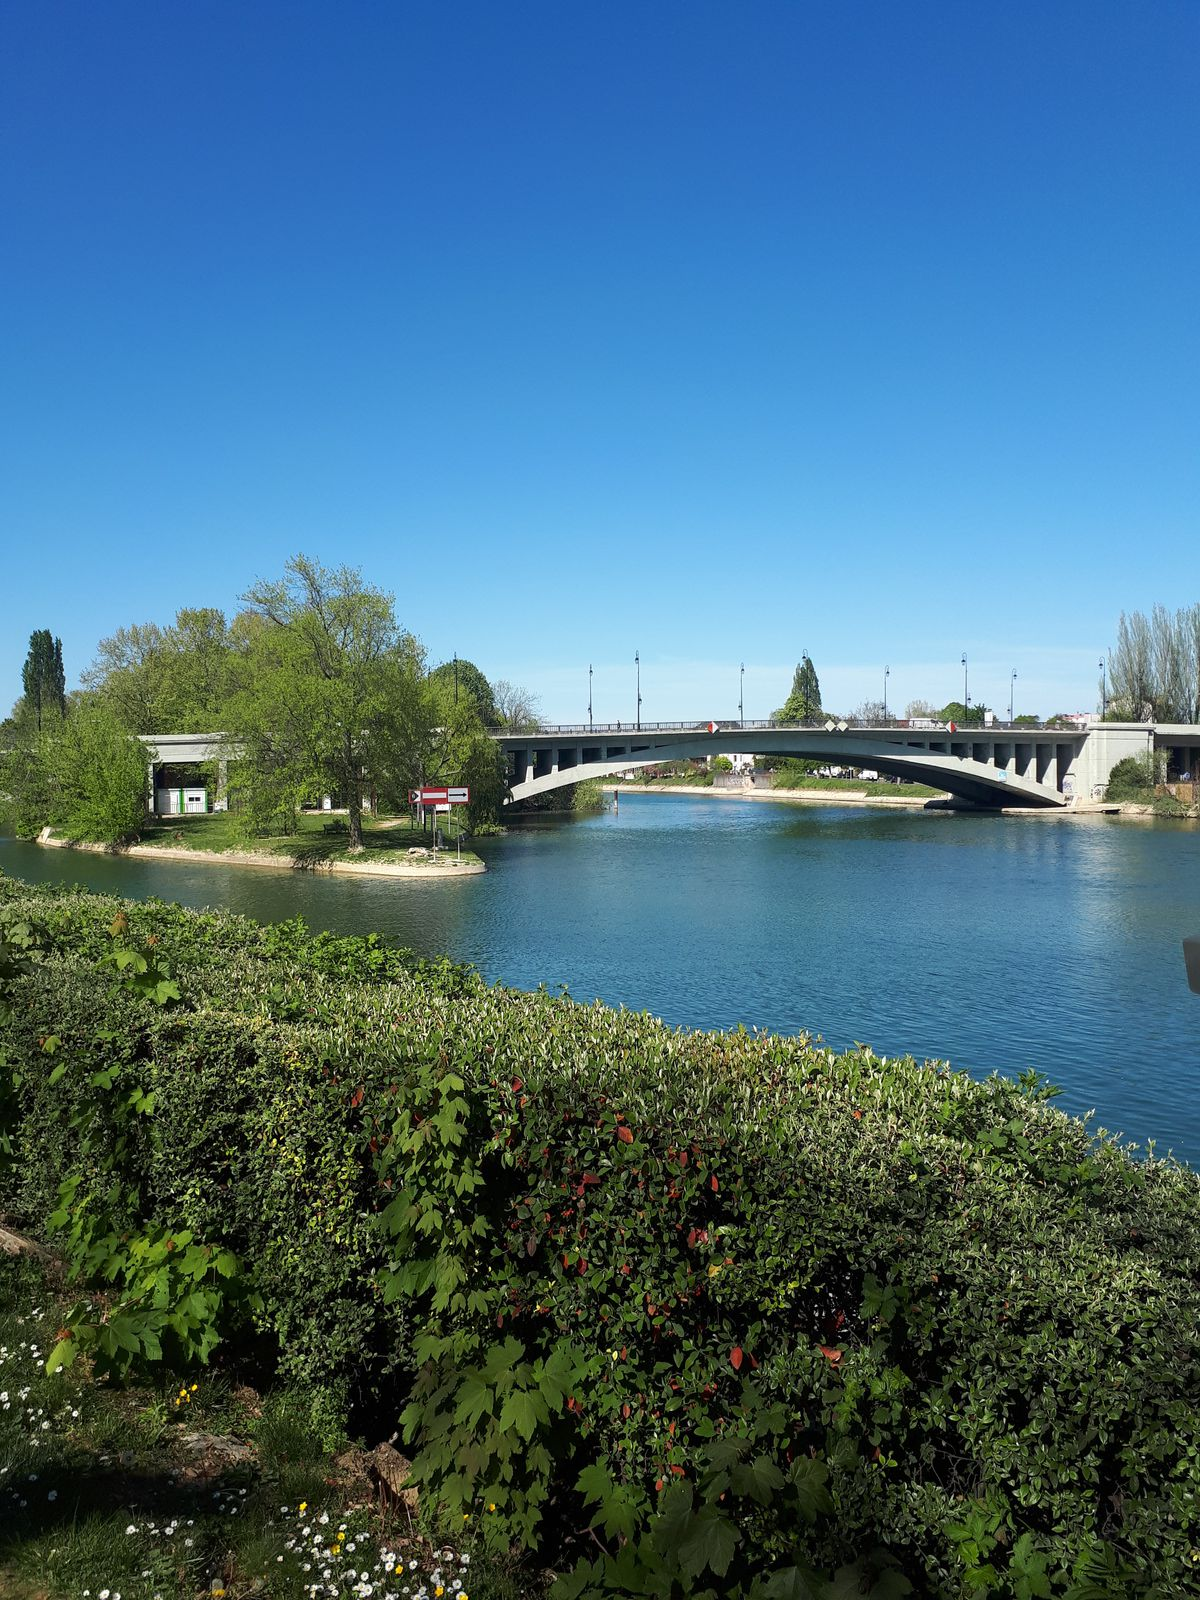 Joinville le pont en 2020. Bords de Marne.  Photo de  : © Eric Dubois